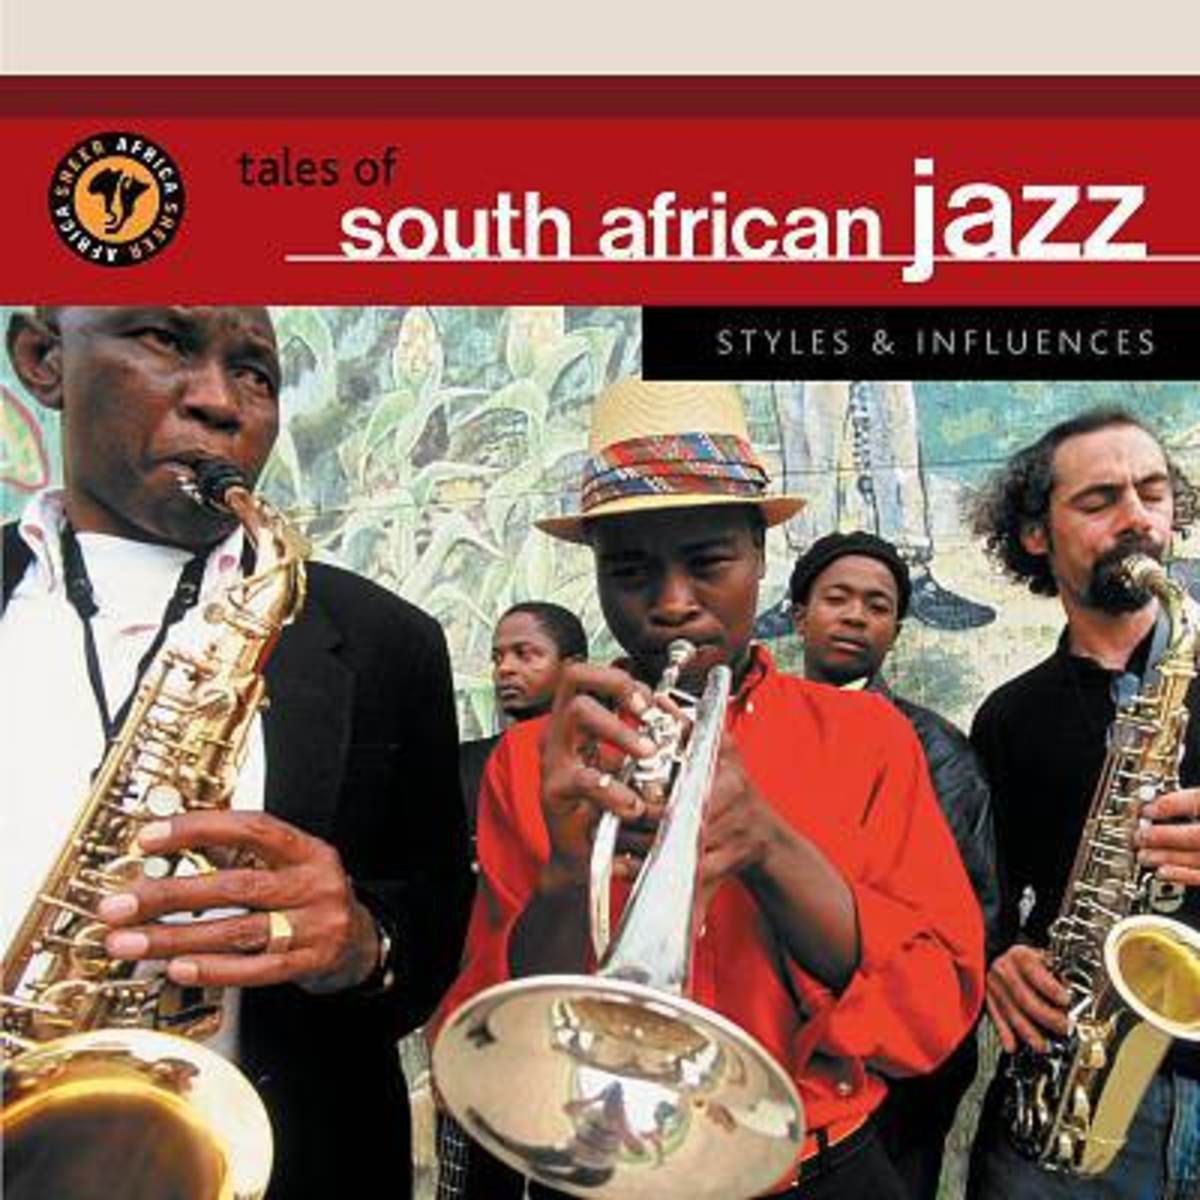 dig-a-jazz-appreciating-the-music-now-in-viral-format